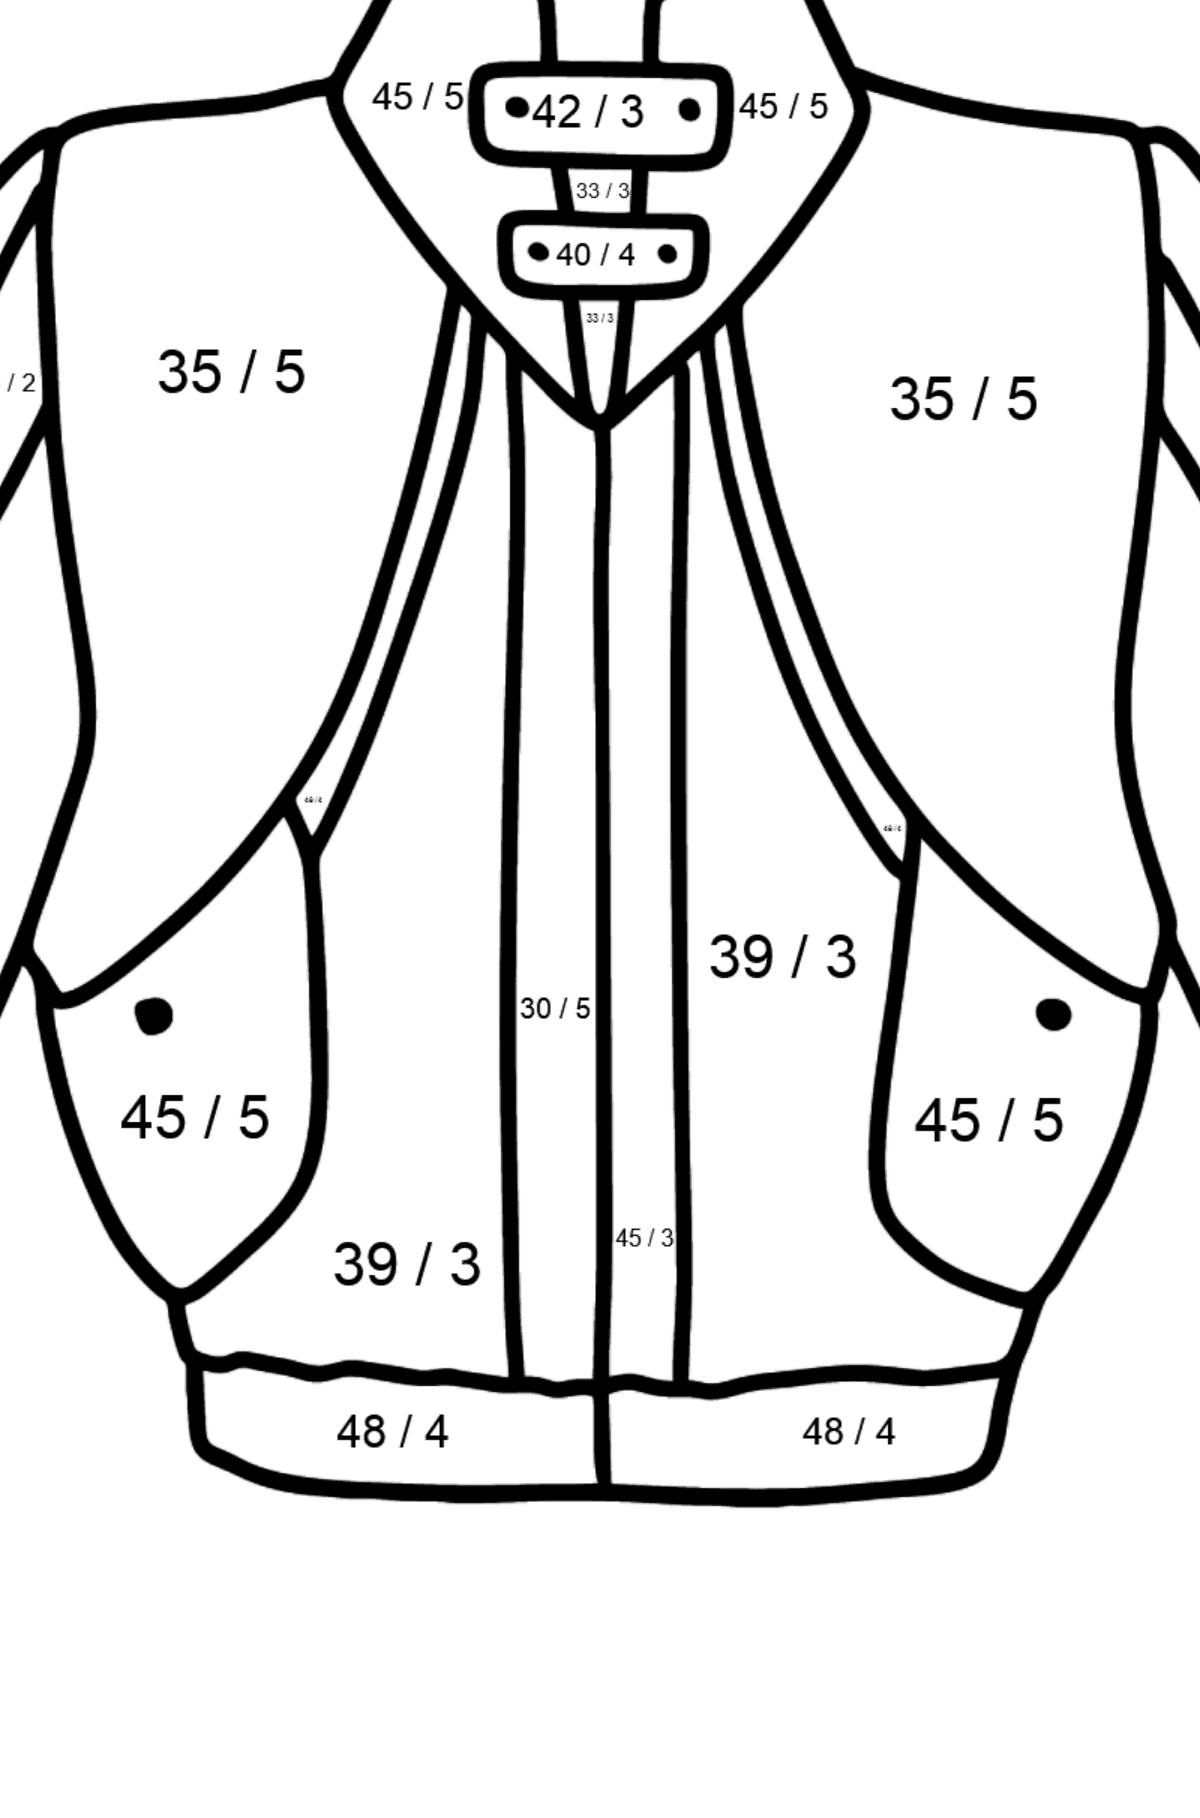 Jacket coloring page - Math Coloring - Division for Kids